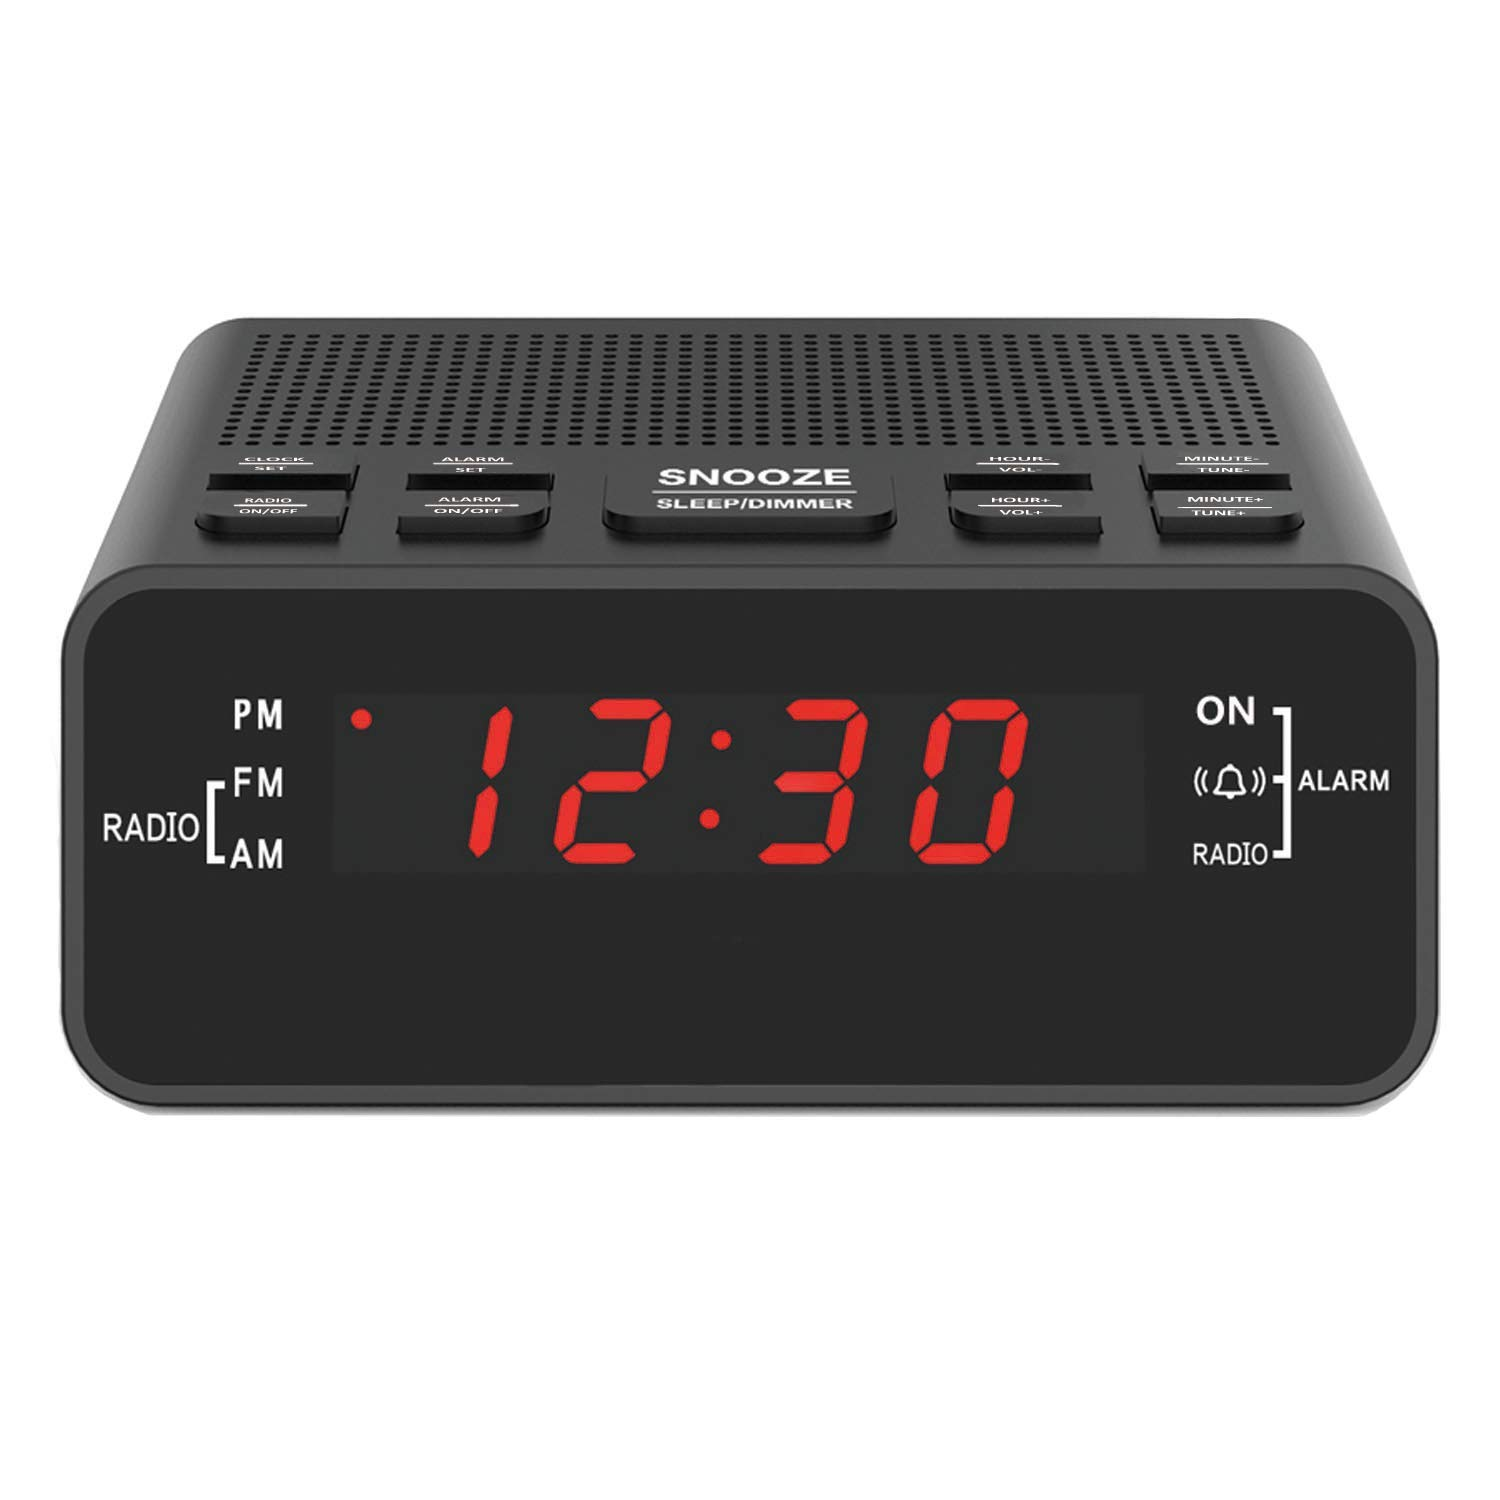 """Jingsense Digital Alarm Clock Radio, Small Alarm Clocks for Bedrooms with AM/FM Sleep Timer Radio, 0.6"""" Red Digits LED Dimmer Display, Easy Snooze ..."""